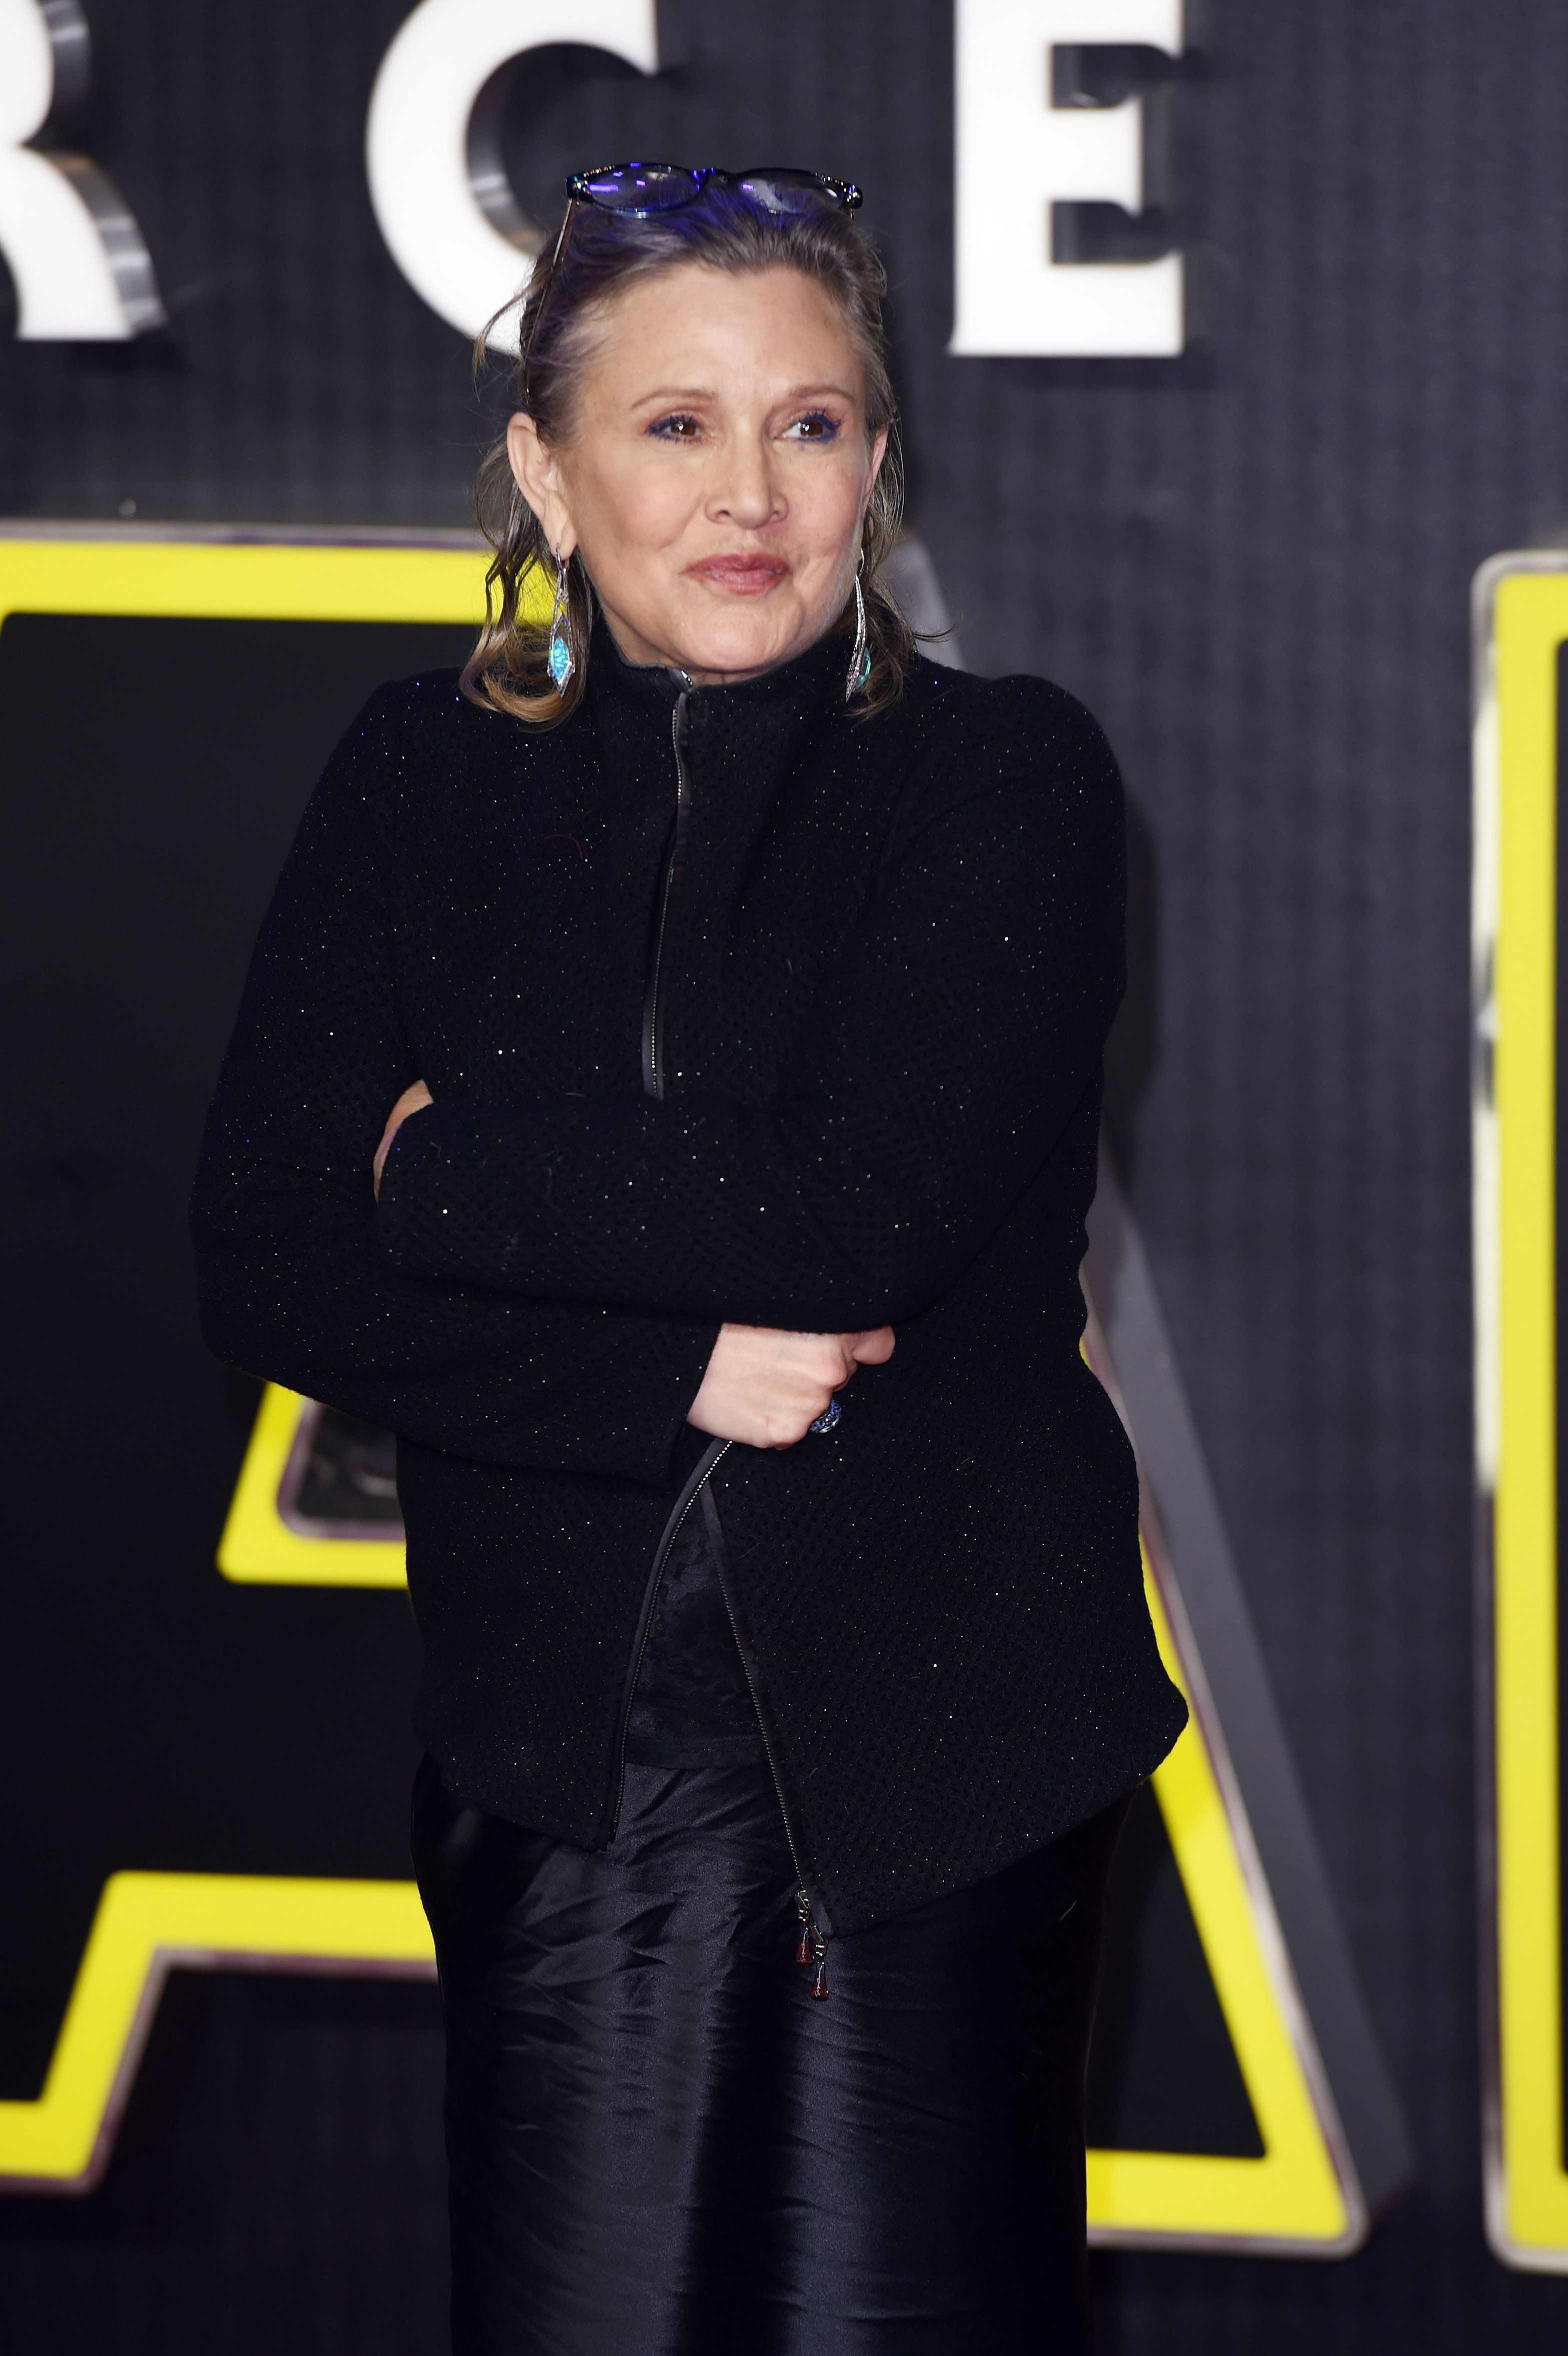 Carrie Fisher Once Sent An Actual Cow's Tongue To A Producer Who Sexually Harassed Her Friend